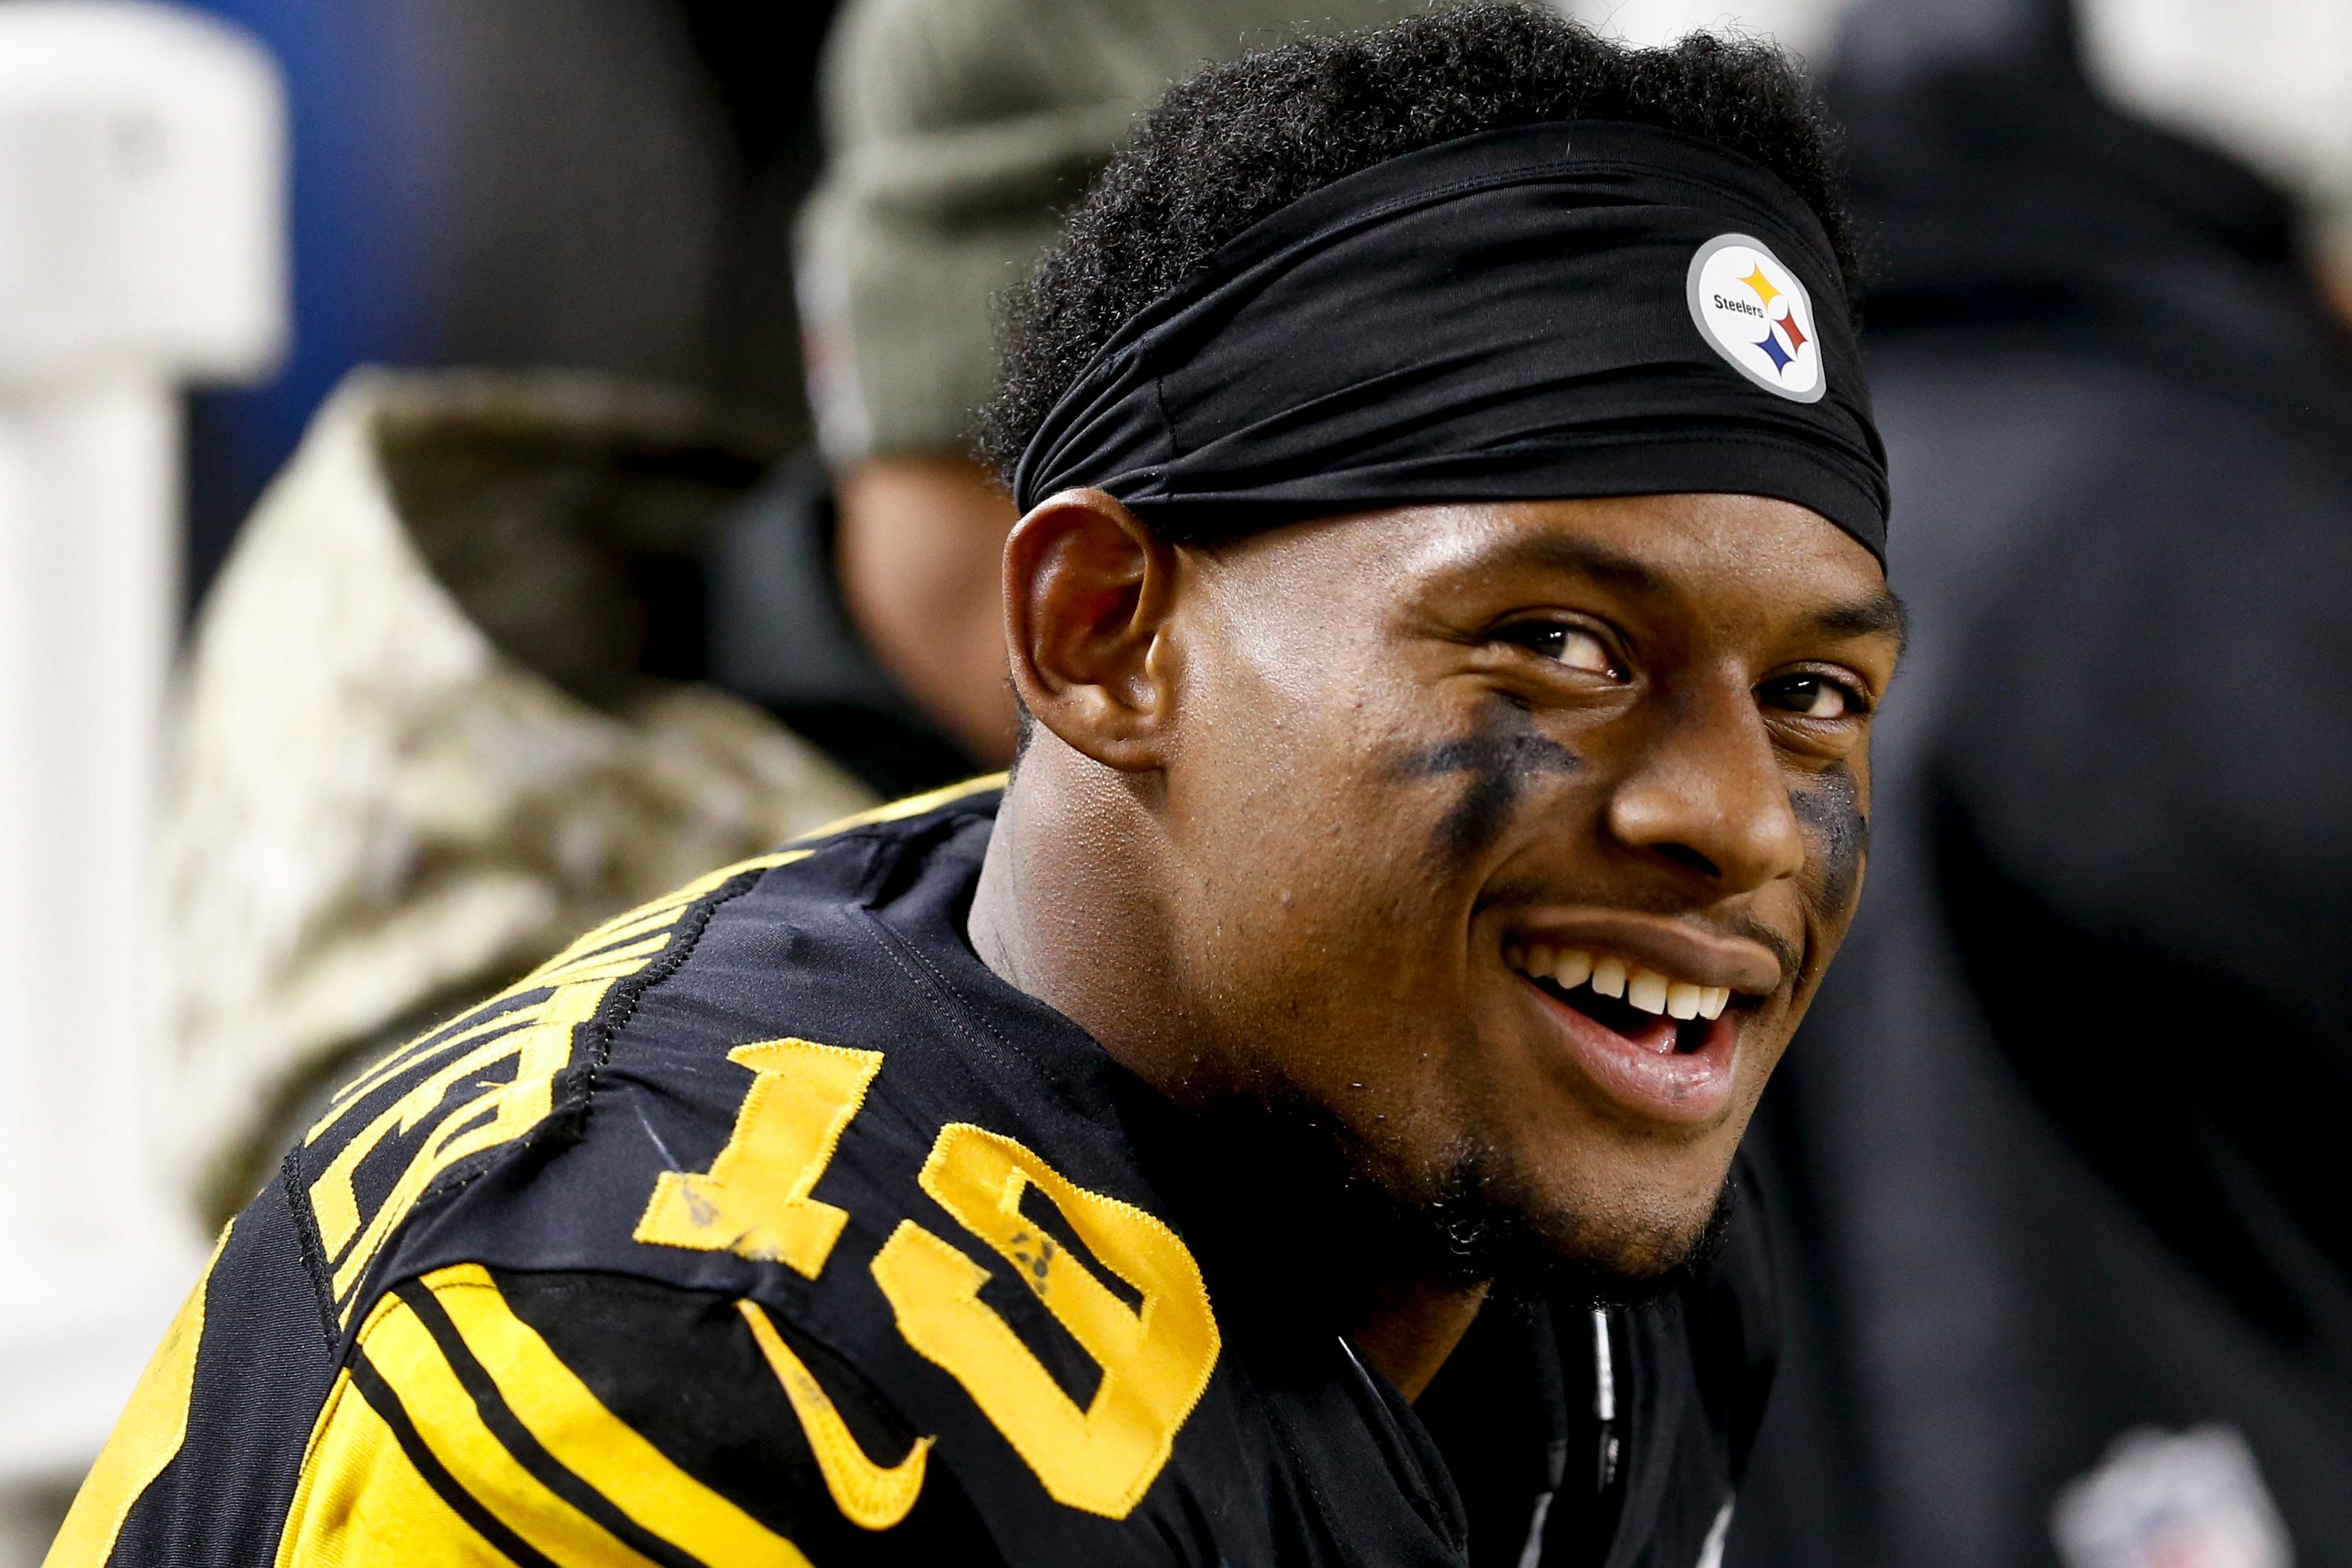 FILE - In this Nov. 16, 2017, file photo, Pittsburgh Steelers wide receiver JuJu Smith-Schuster (19) smiles on he sideline during an NFL football game against the Tennessee Titans, in Pittsburgh. Smith-Schuster has been suspended one game by the NFL for violating league safety rules. Smith-Schuster was flagged for unnecessary roughness and taunting after a blindside hit on Bengals linebacker Vontaze Burfict in the fourth quarter of Pittsburgh's 23-20 victory Monday night, Dec. 5. (AP Photo/Keith Srakocic, File)<p></p>